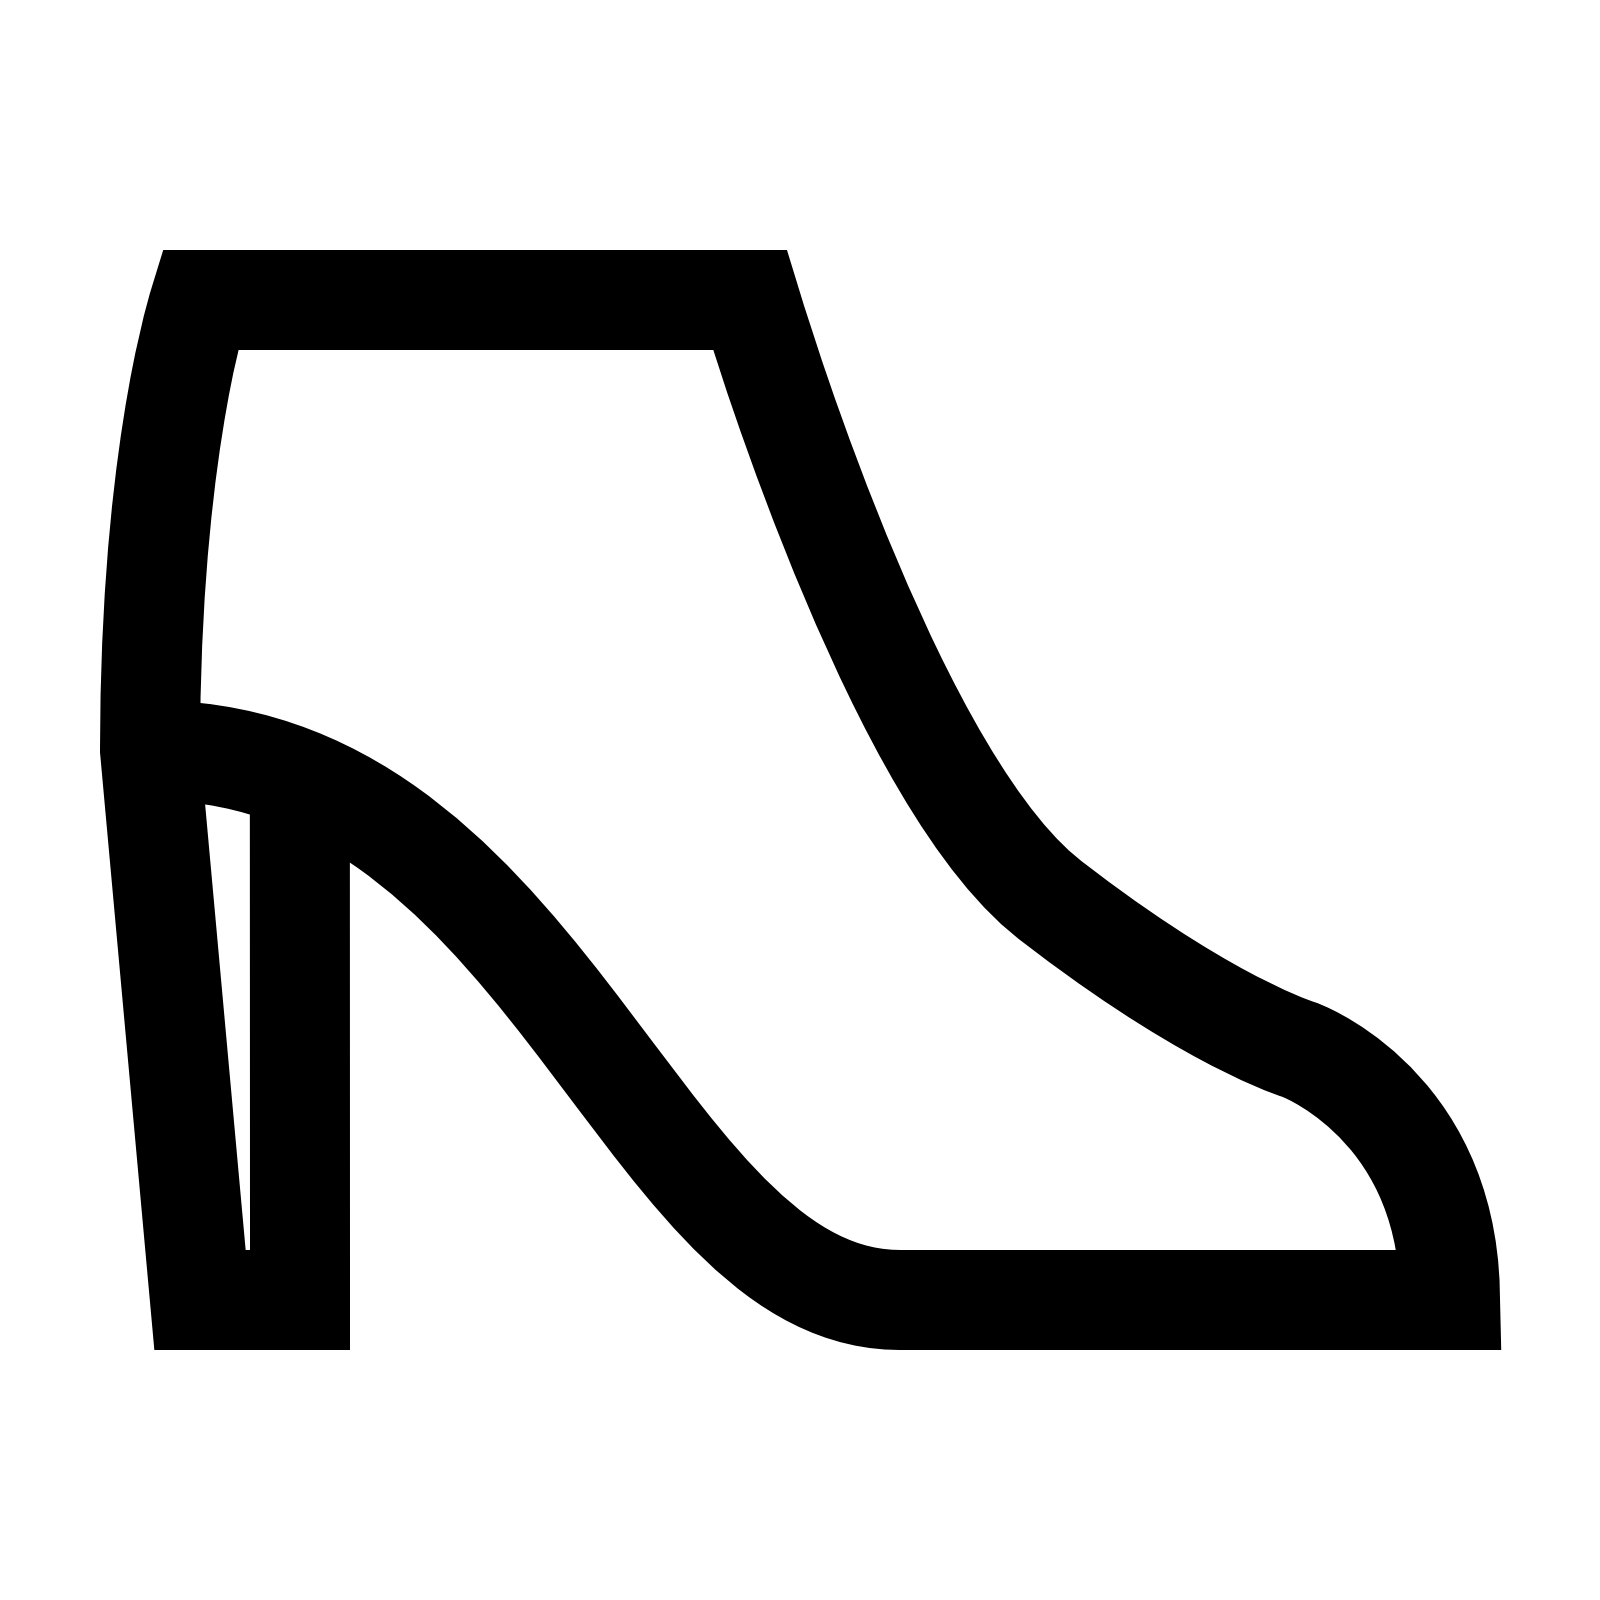 sneakers clipart library. Clip shoes women's banner free library